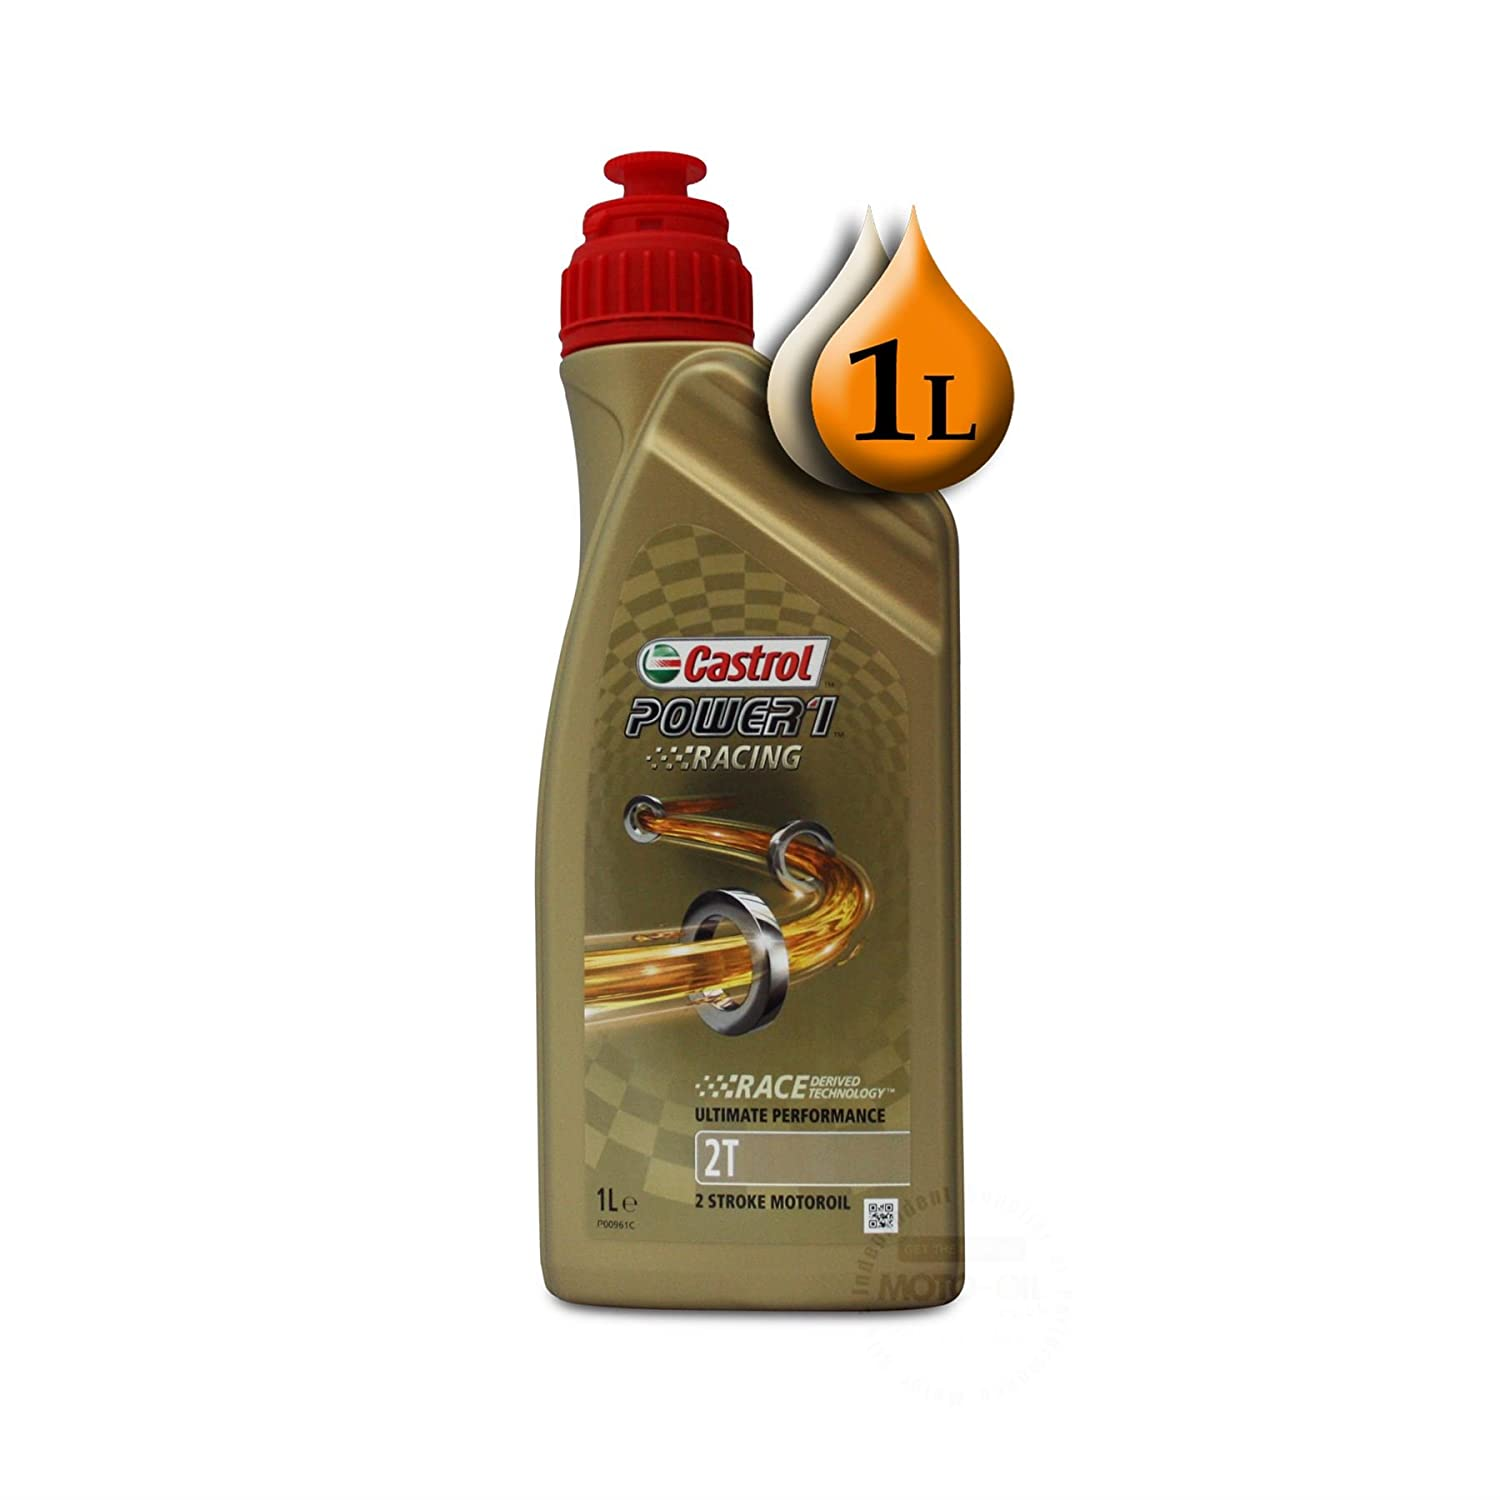 Castrol Power 1 Racing 2T 1Lb: Amazon.es: Coche y moto